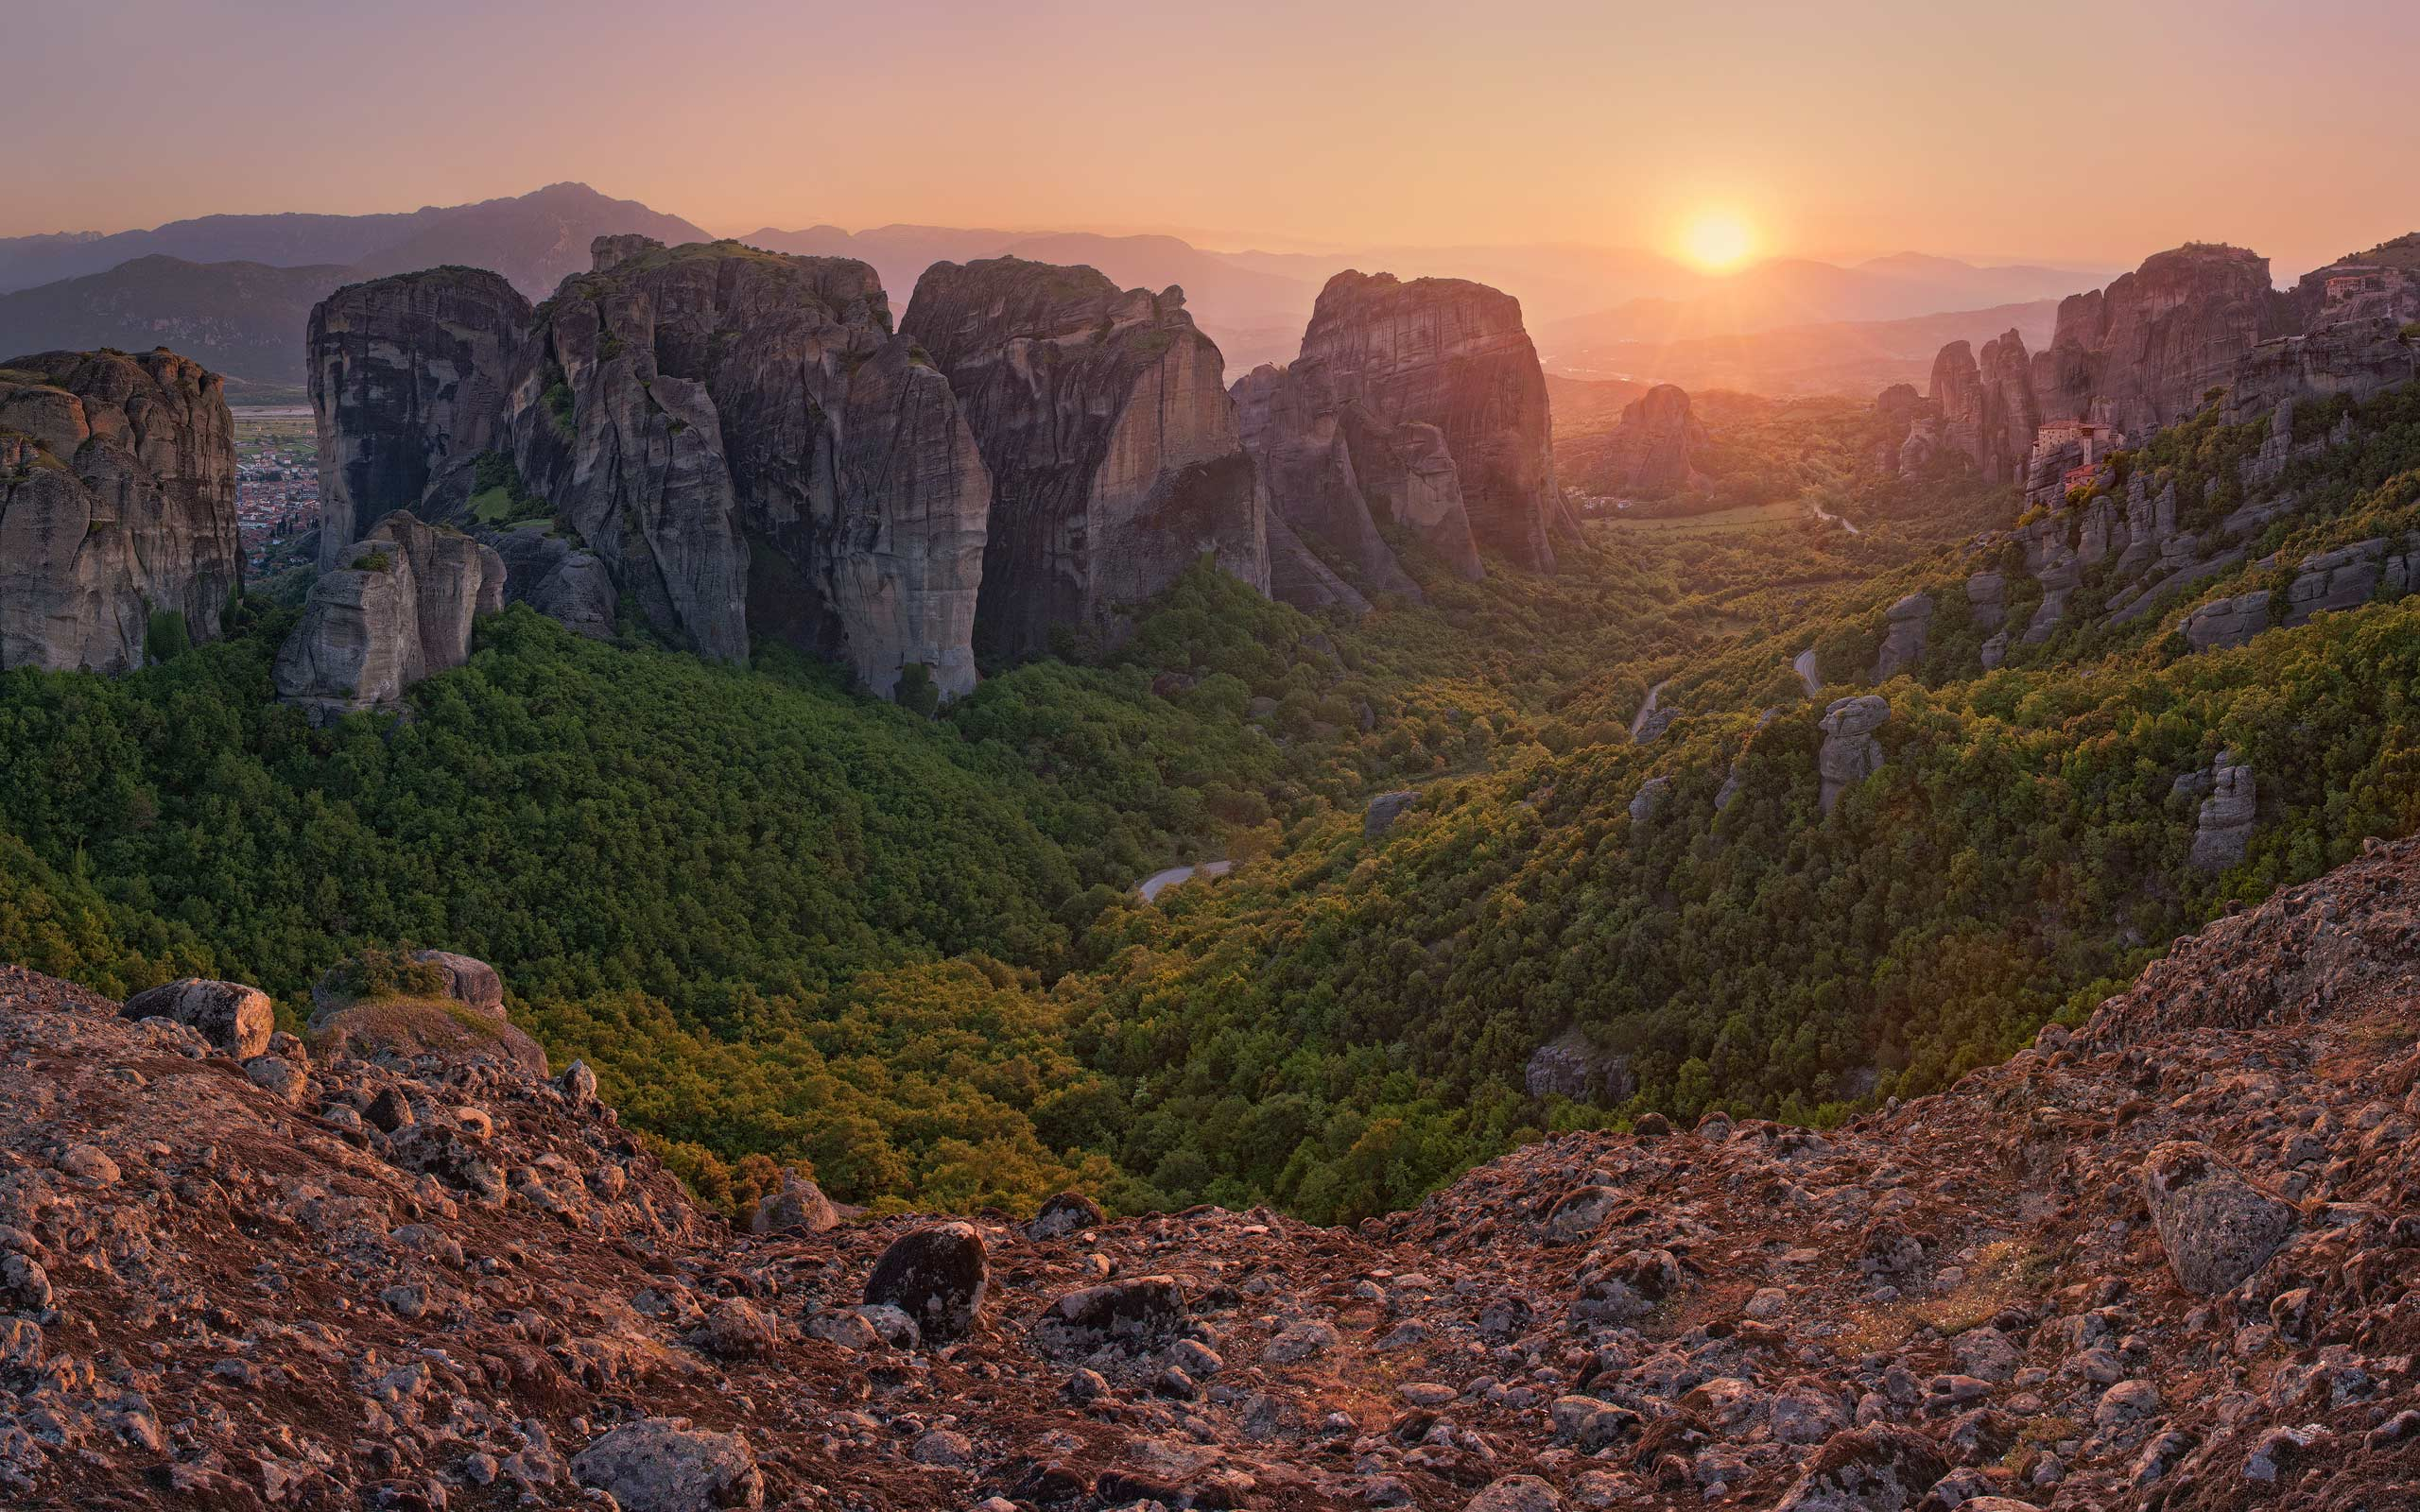 Sunset at Meteora, Thessaly, Greece - Meteora-Monasteries-Greece - Mike Reyfman Photography